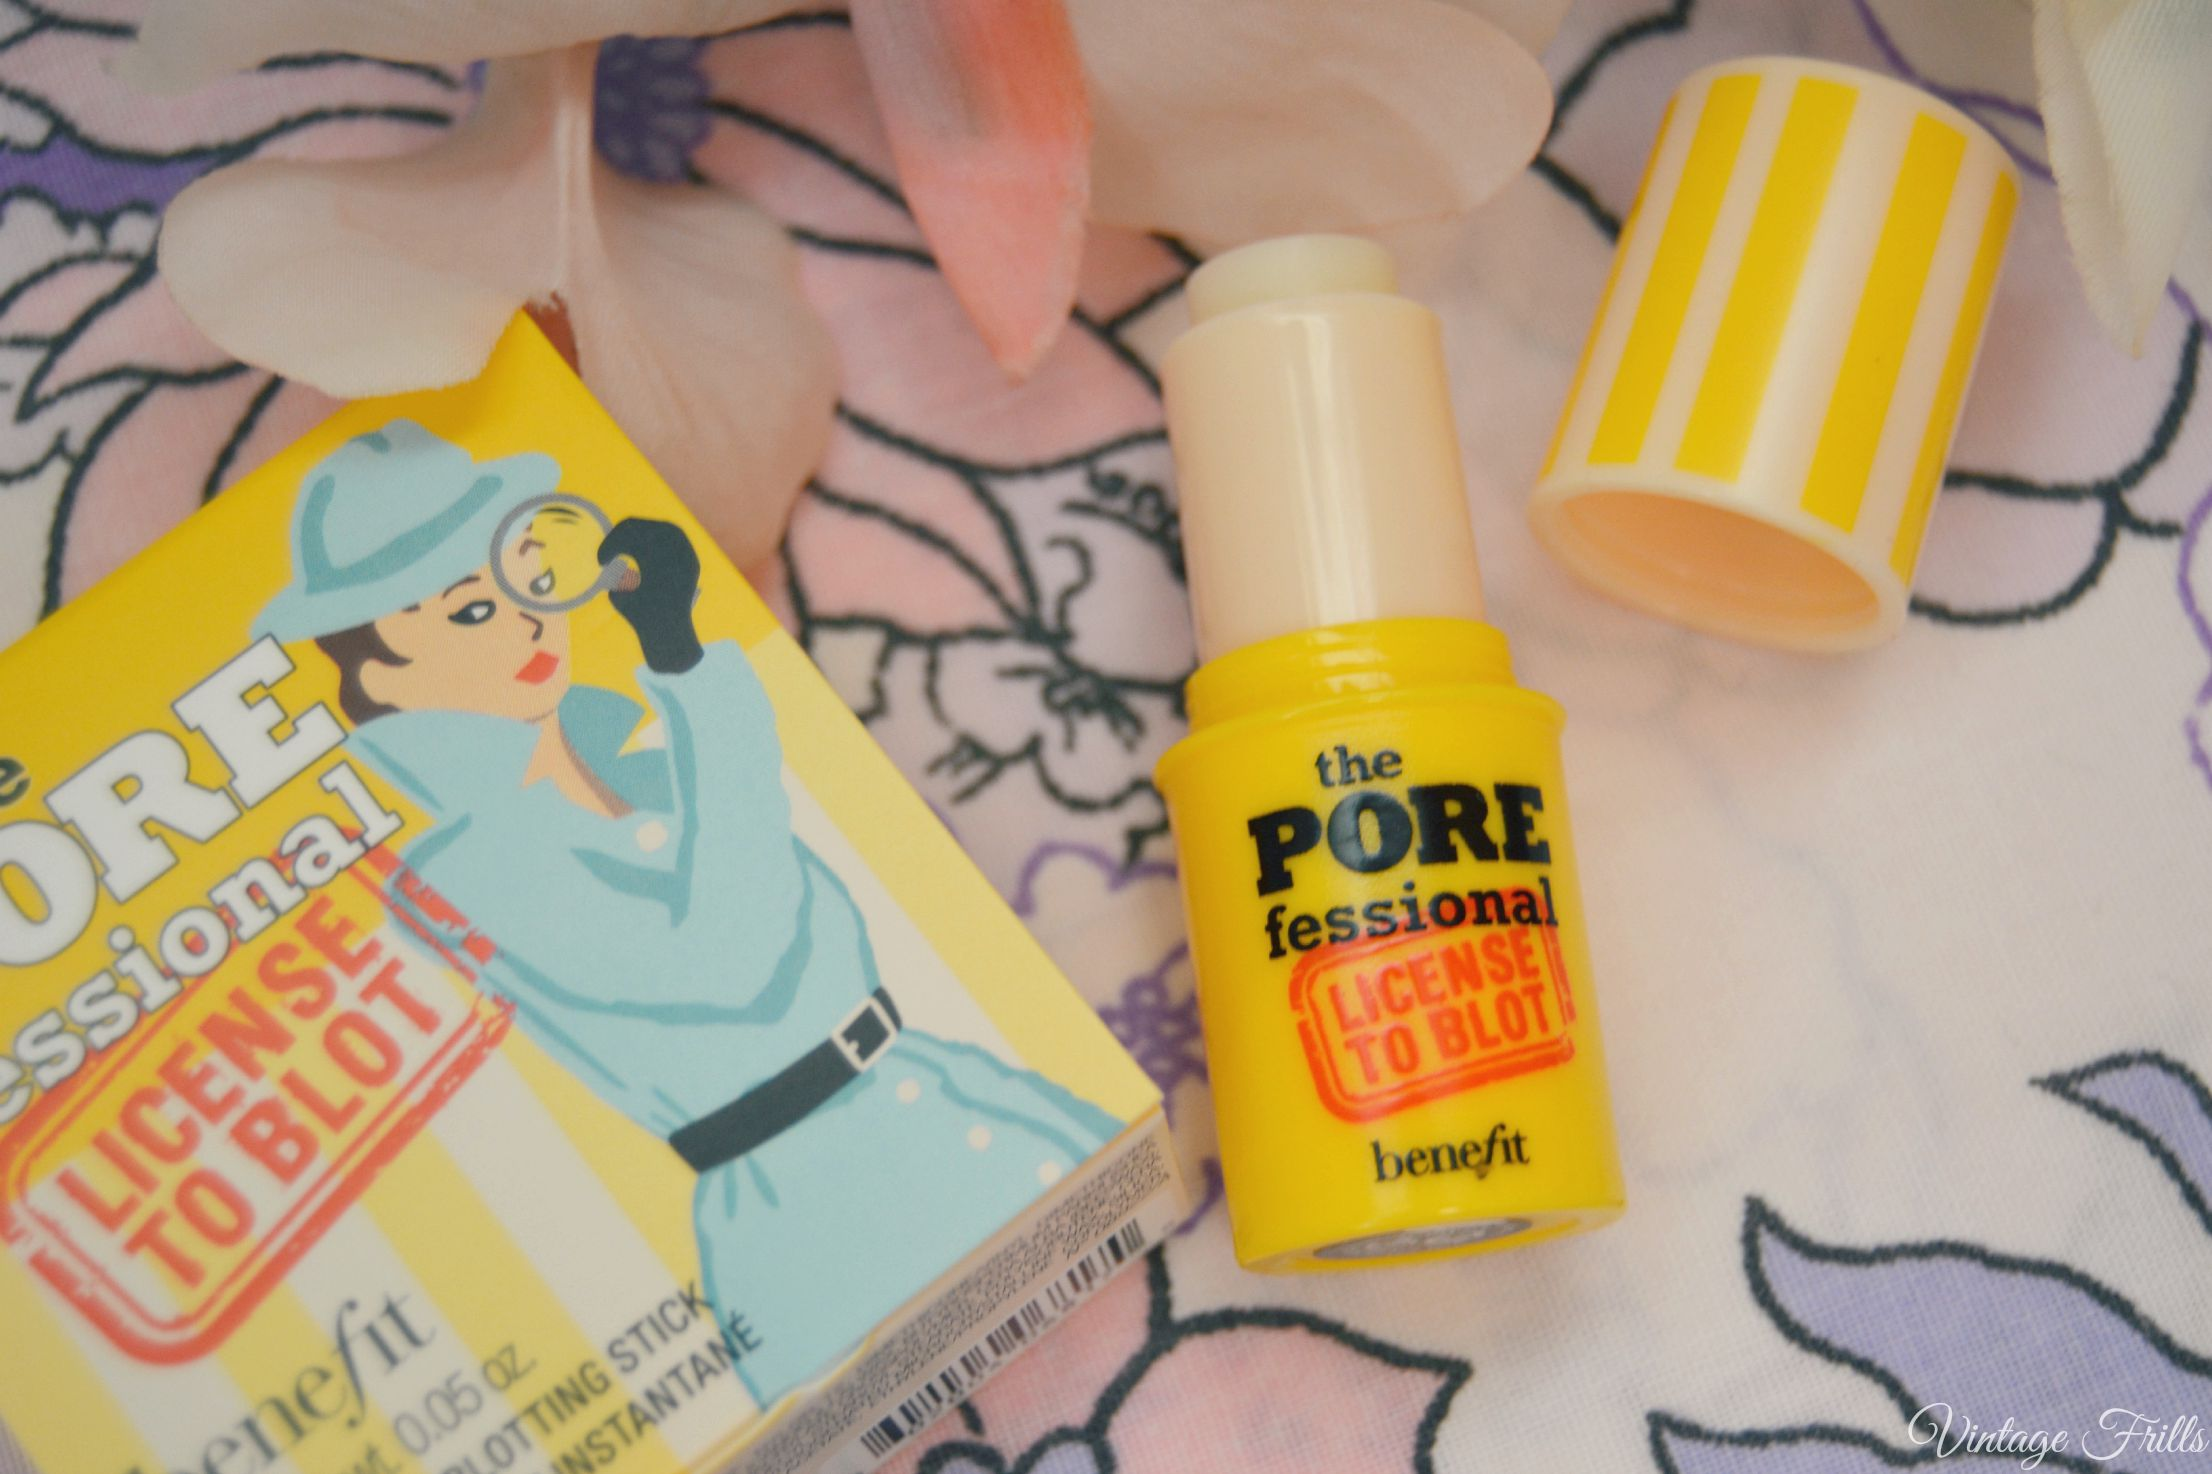 September Birchbox Benefit Porefessional Licence to Blot